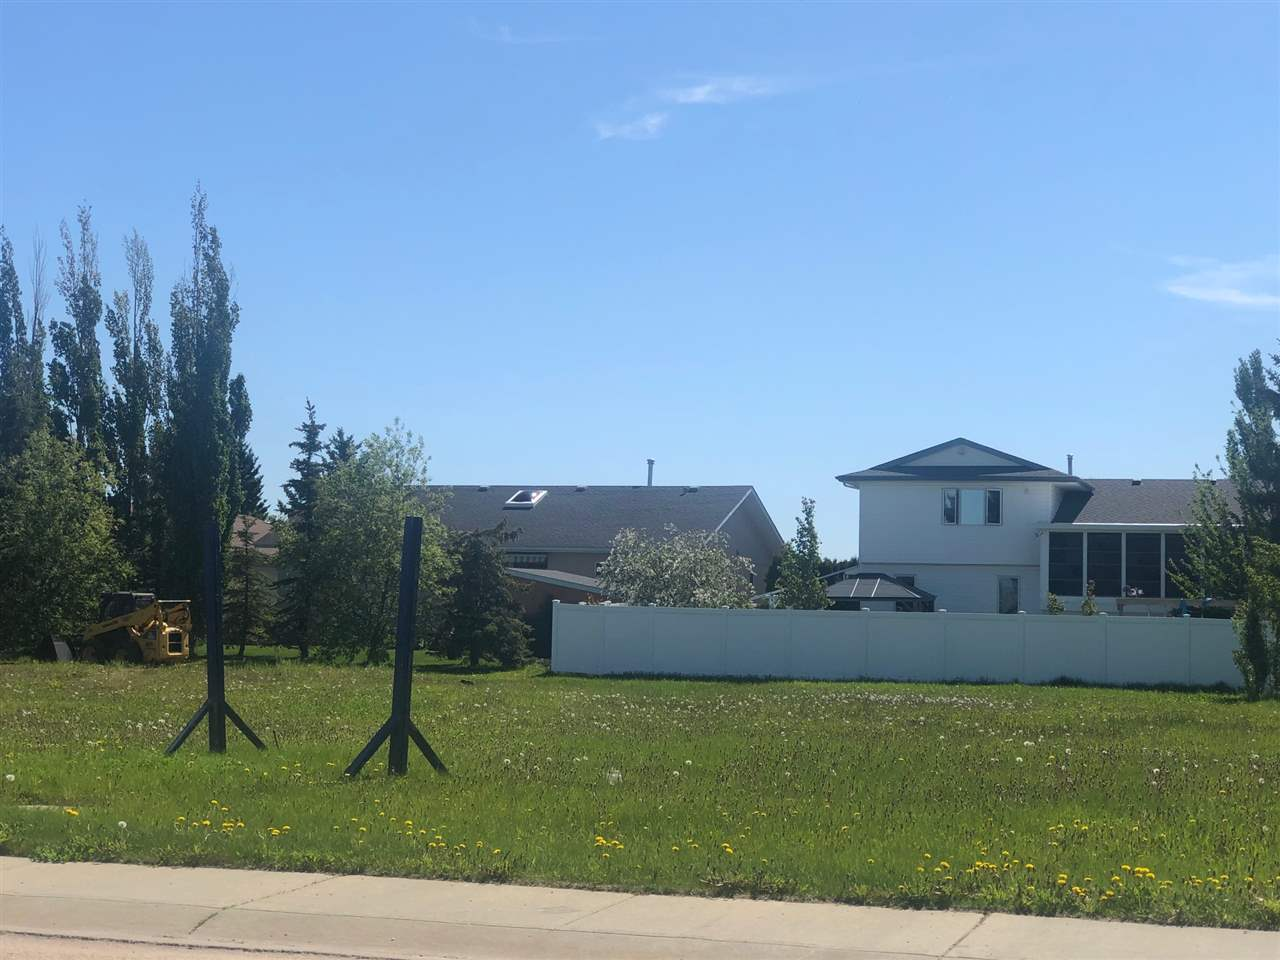 Lot 23 is 8,150 sq ft  The average lot in Westlock is 6,000 sq ft so this lot is exceptional and priced to sell. Located at the north end of Westlock Elementary School on a quiet street. Walking distance to Apollo Restaurant and convenience store. Priced to sell - act fast while the rates are so low!!